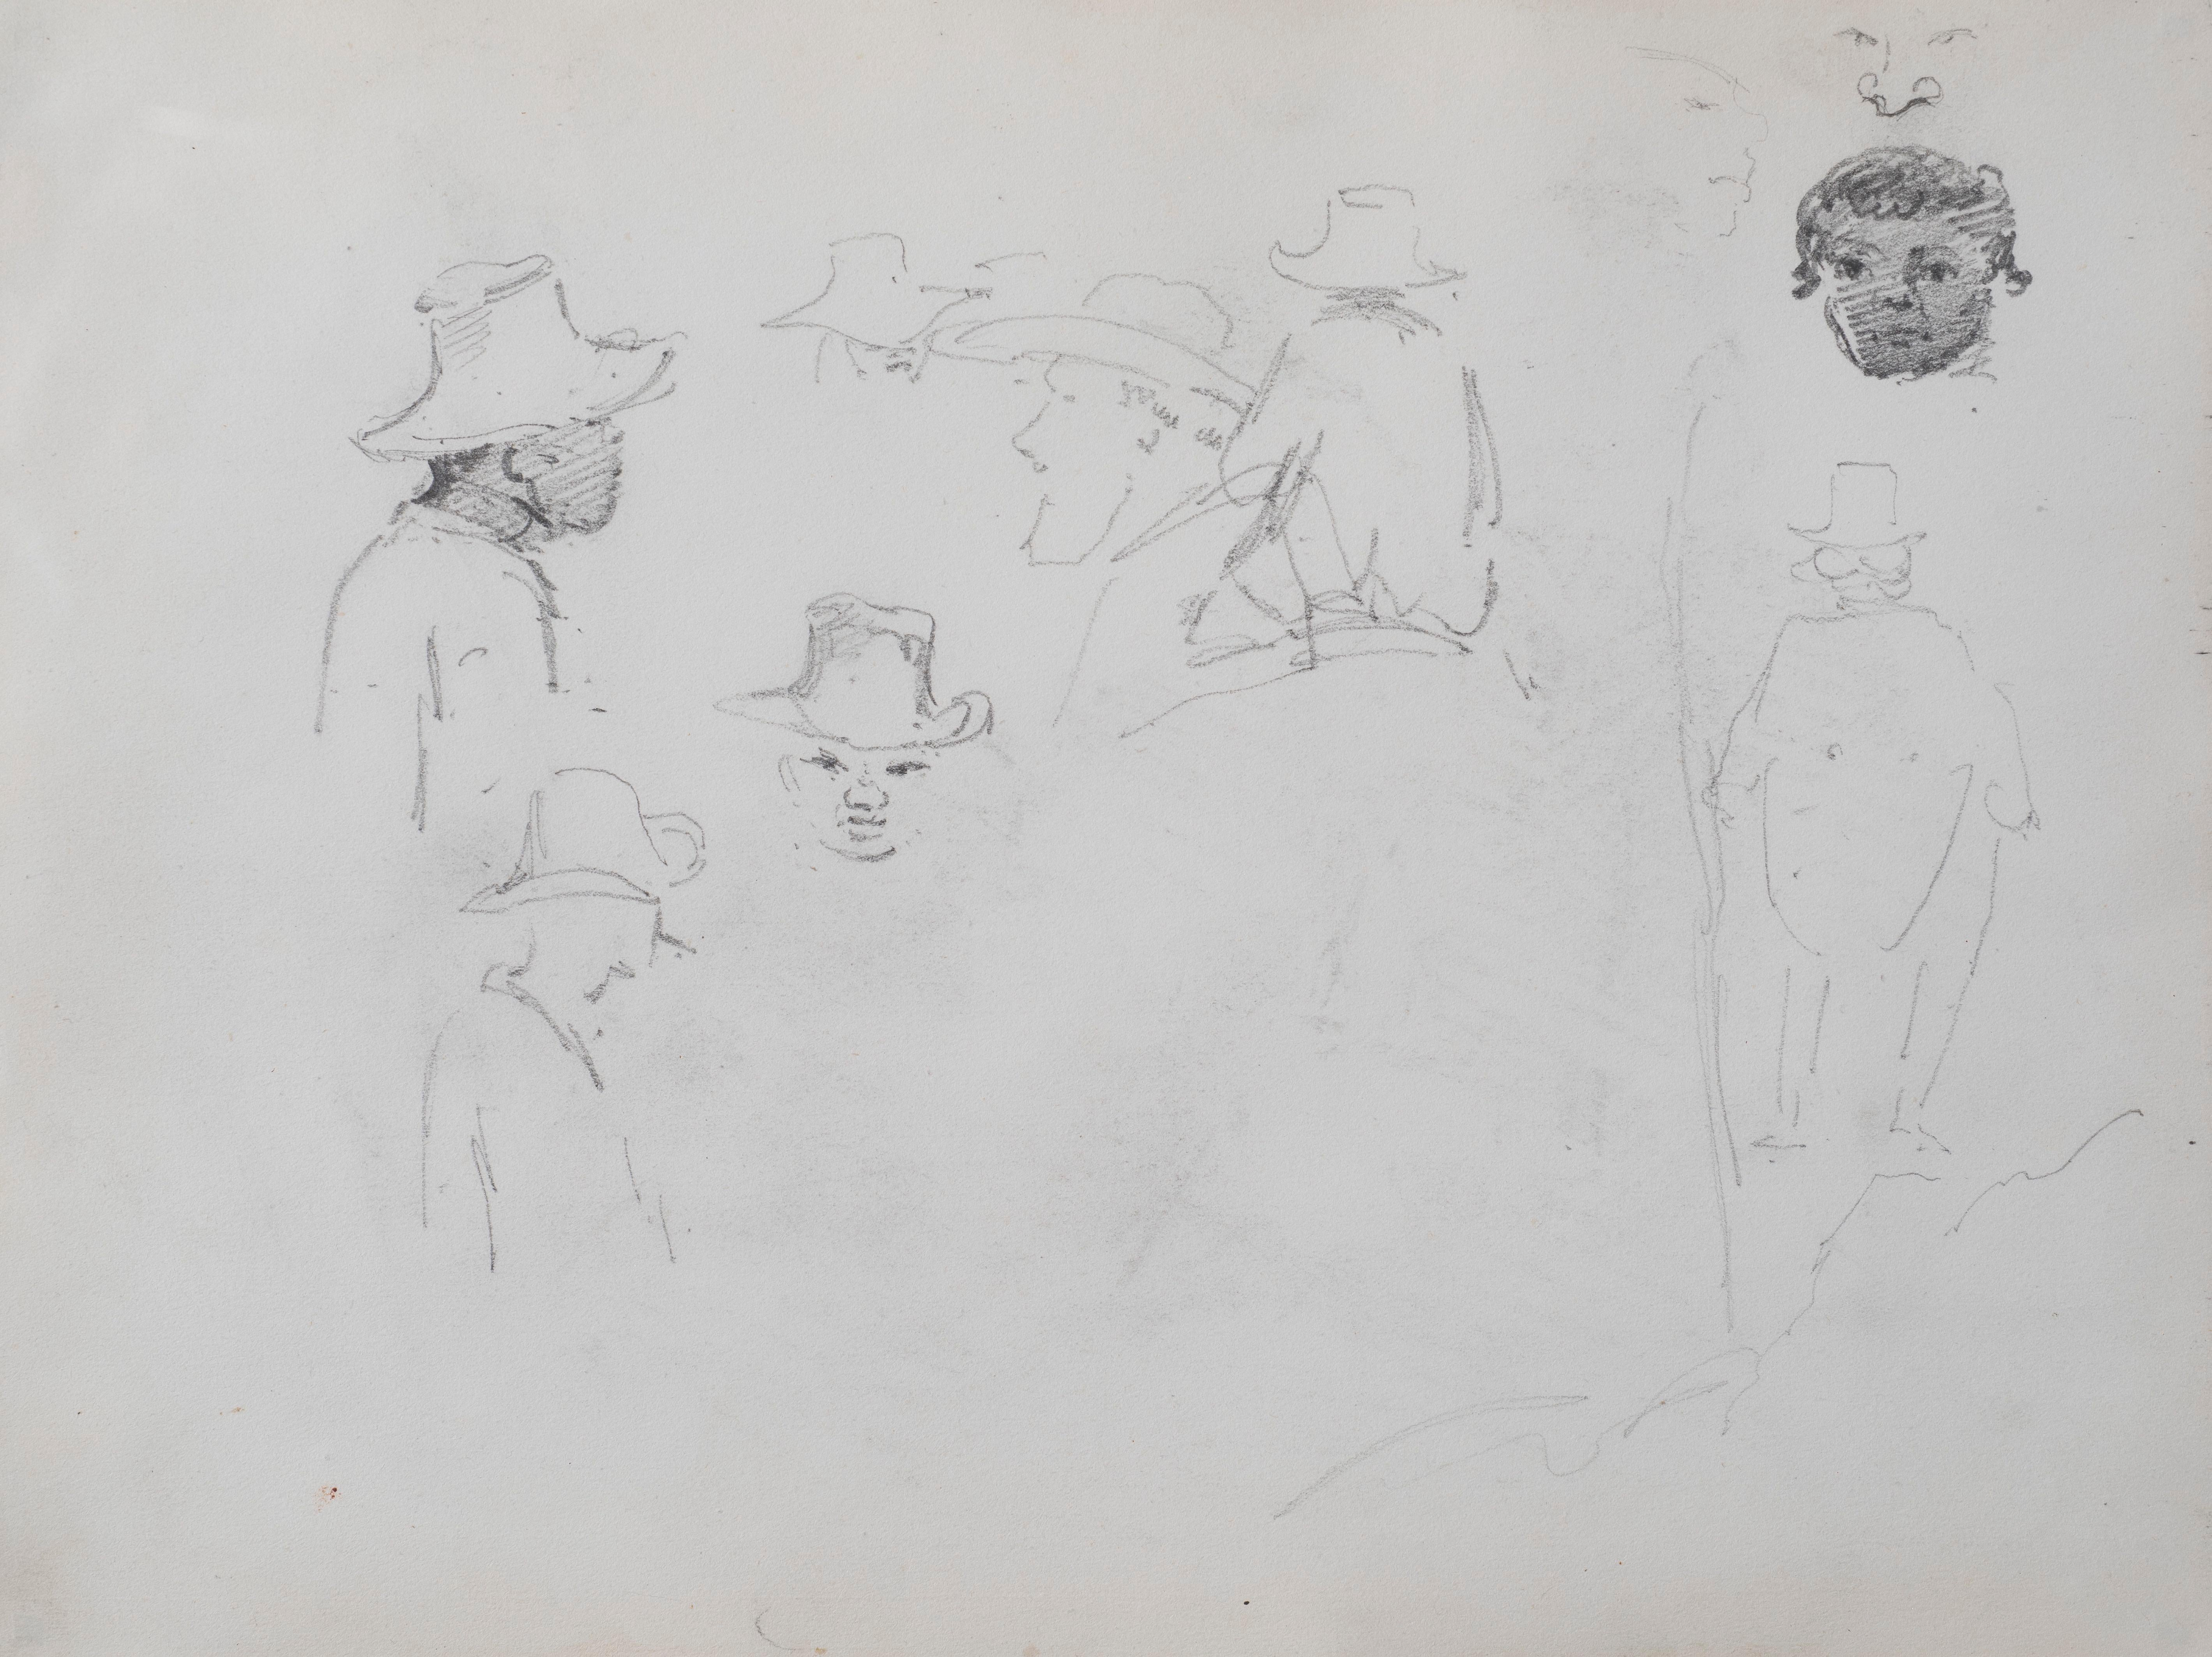 Early rare drawing by Impressionist Camille Pissarro titled Study of Men's Heads